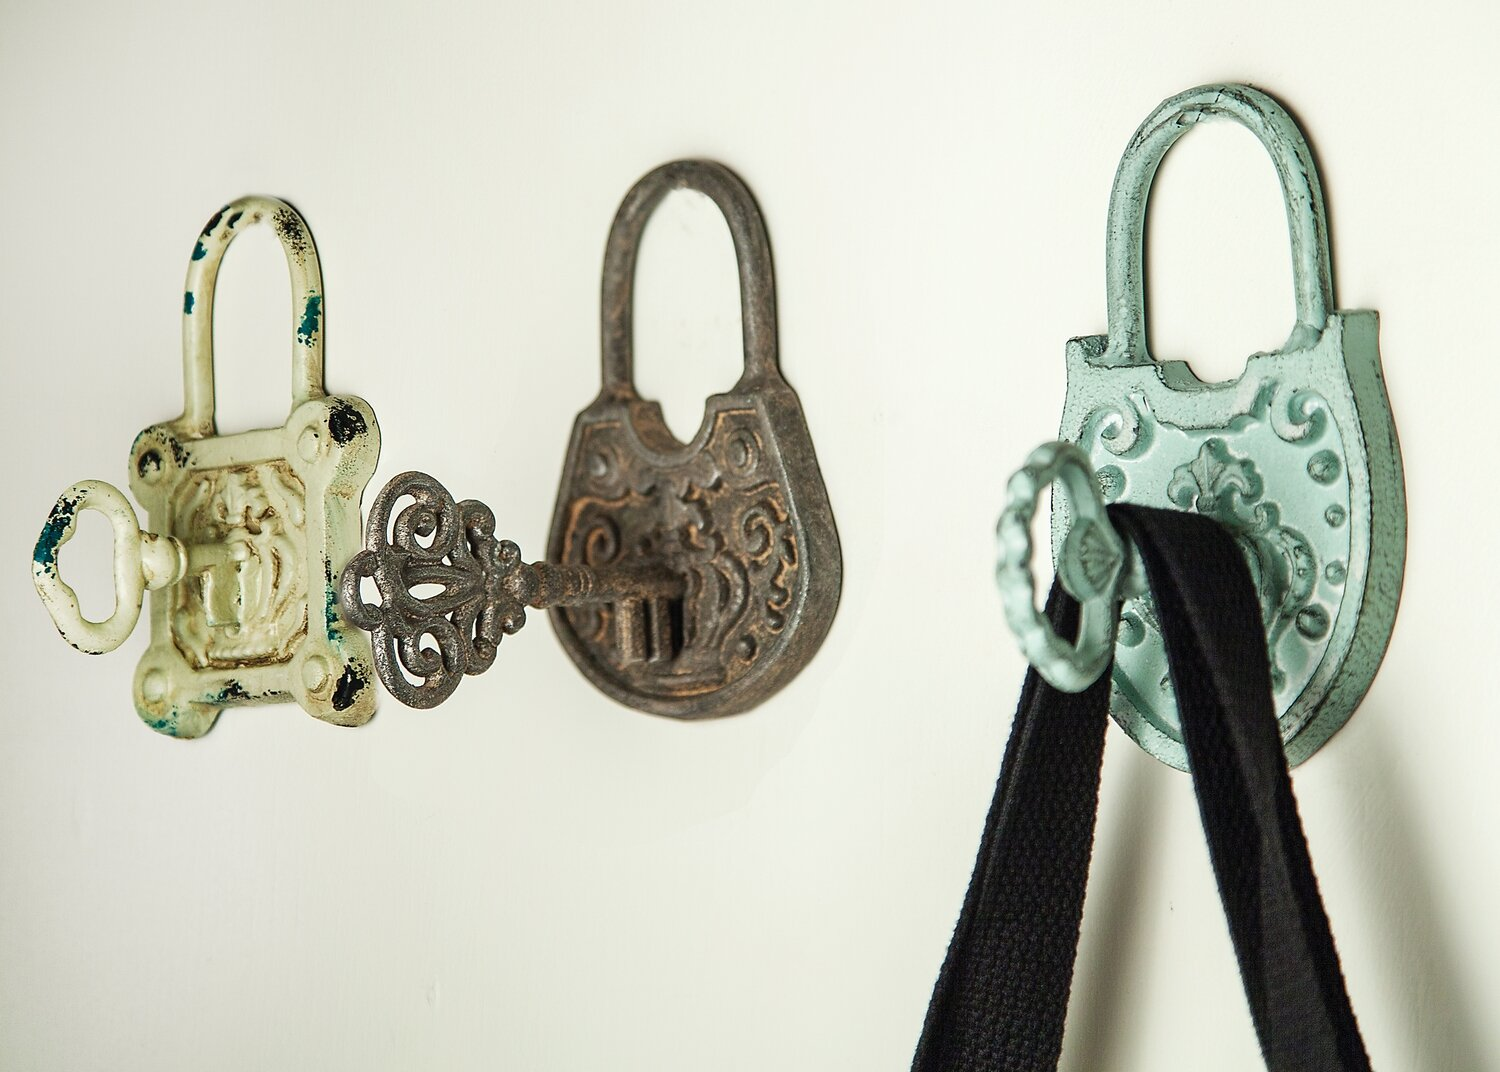 Vintage Lock Cast Iron Wall Hook Assorted